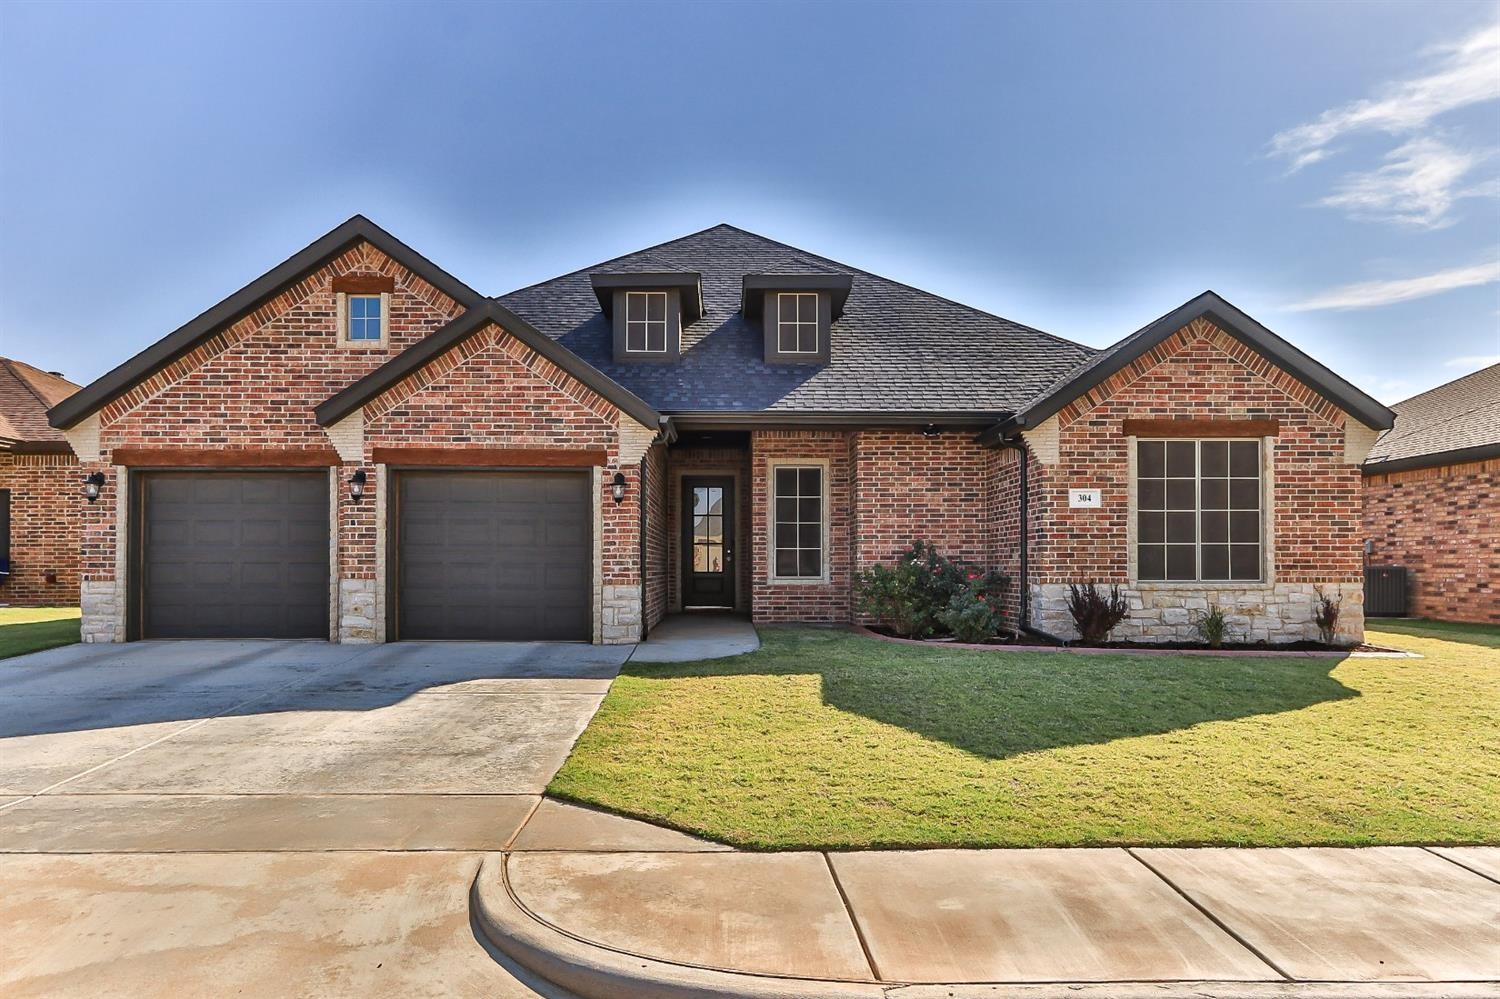 Spectacular home in Frenship ISD! 4 bedrooms plus a office! Only 3 years old. Stunning dream kitchen with so much light! Kitchen features beautiful granite & backsplash, lots of work space, island with breakfast bar, large pantry, and stainless appliances including double ovens & gas cooktop. Living room is spacious with a shiplap fireplace wall & eye-catching vaulted ceiling. A lovely office is located through the french doors off the living room. The isolated master is roomy and features beautiful ceiling details. The master bathroom is luxurious with a free-standing soaker tub, barrel ceiling, double vanities with granite, separate shower and large walk-in closet. The other 3 bedrooms are clustered around a built-in desk area. The back yard features a 12 x 20 Tuff Shed that is pre-wired. Could make a great workshop! The covered patio is the perfect shady spot to relax. Loaded with unique & beautiful features, you will quickly fall in love with this home!